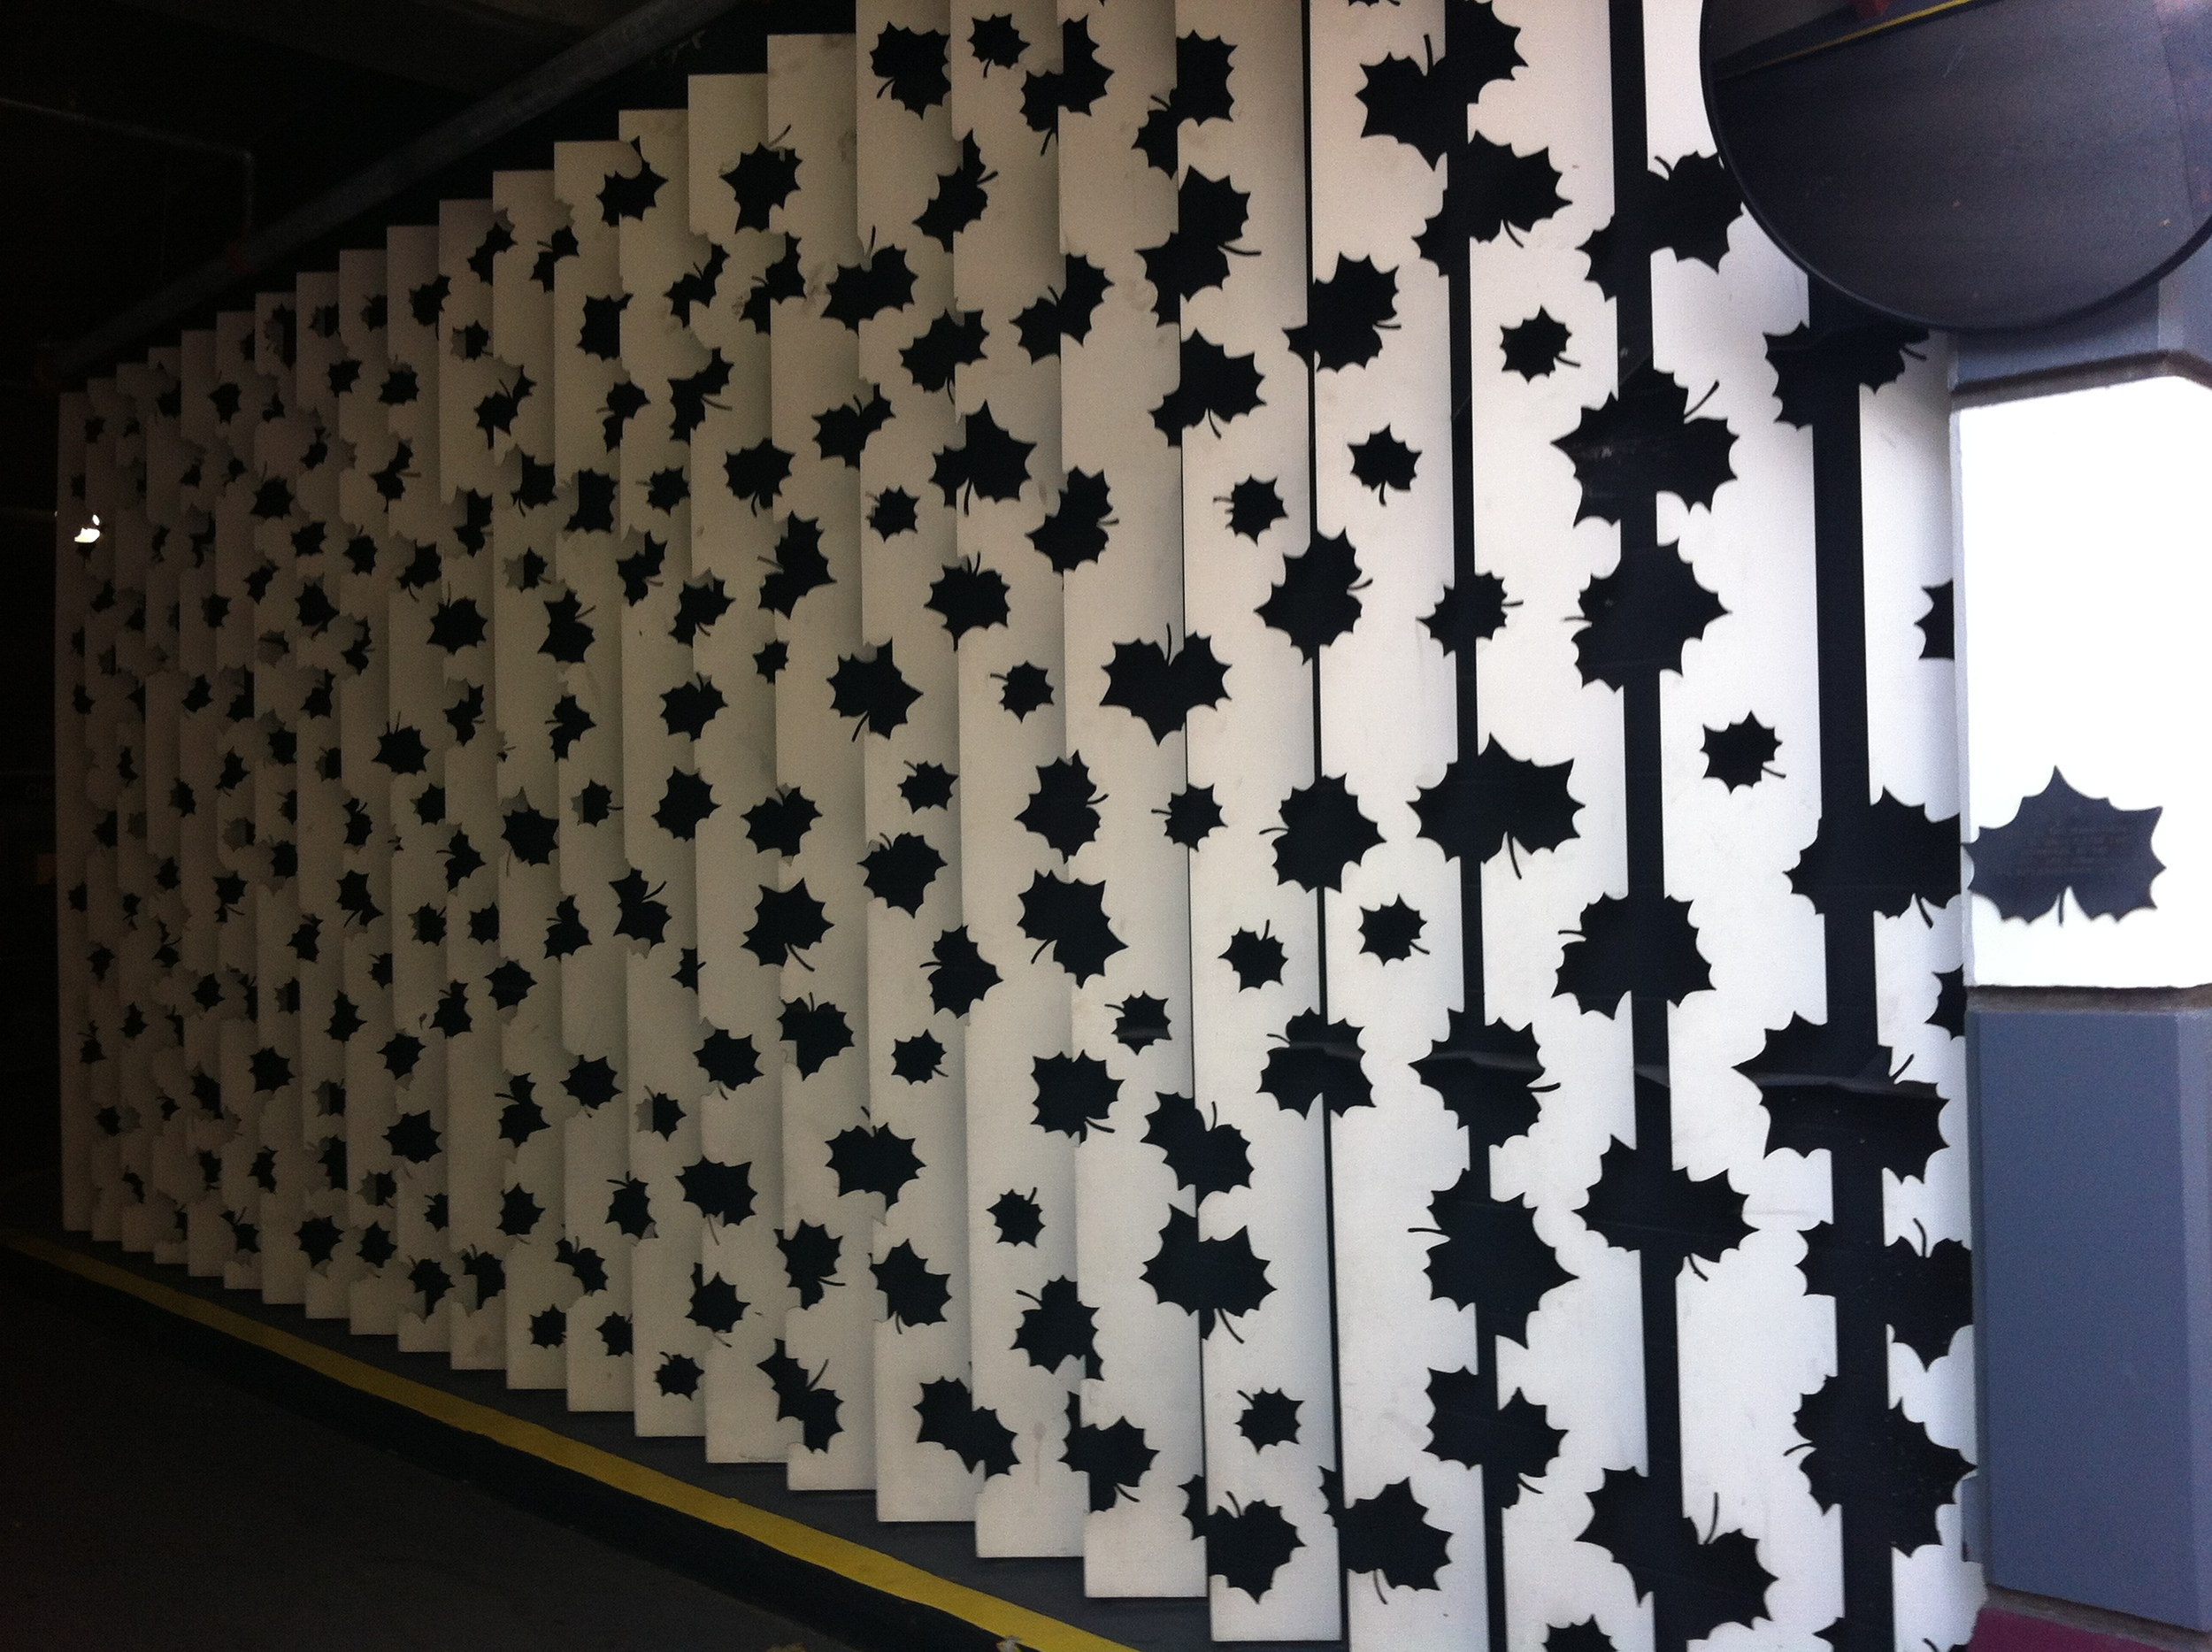 This mural Les Bois, 1992 was created by Bruce Poe and Dennis Proksa.  It consists of 24 white steel plates with a random pattern of cut leaf images against a black wall in a parking lot at street level. As you walk past the leaves evolve from whole to fragmented.